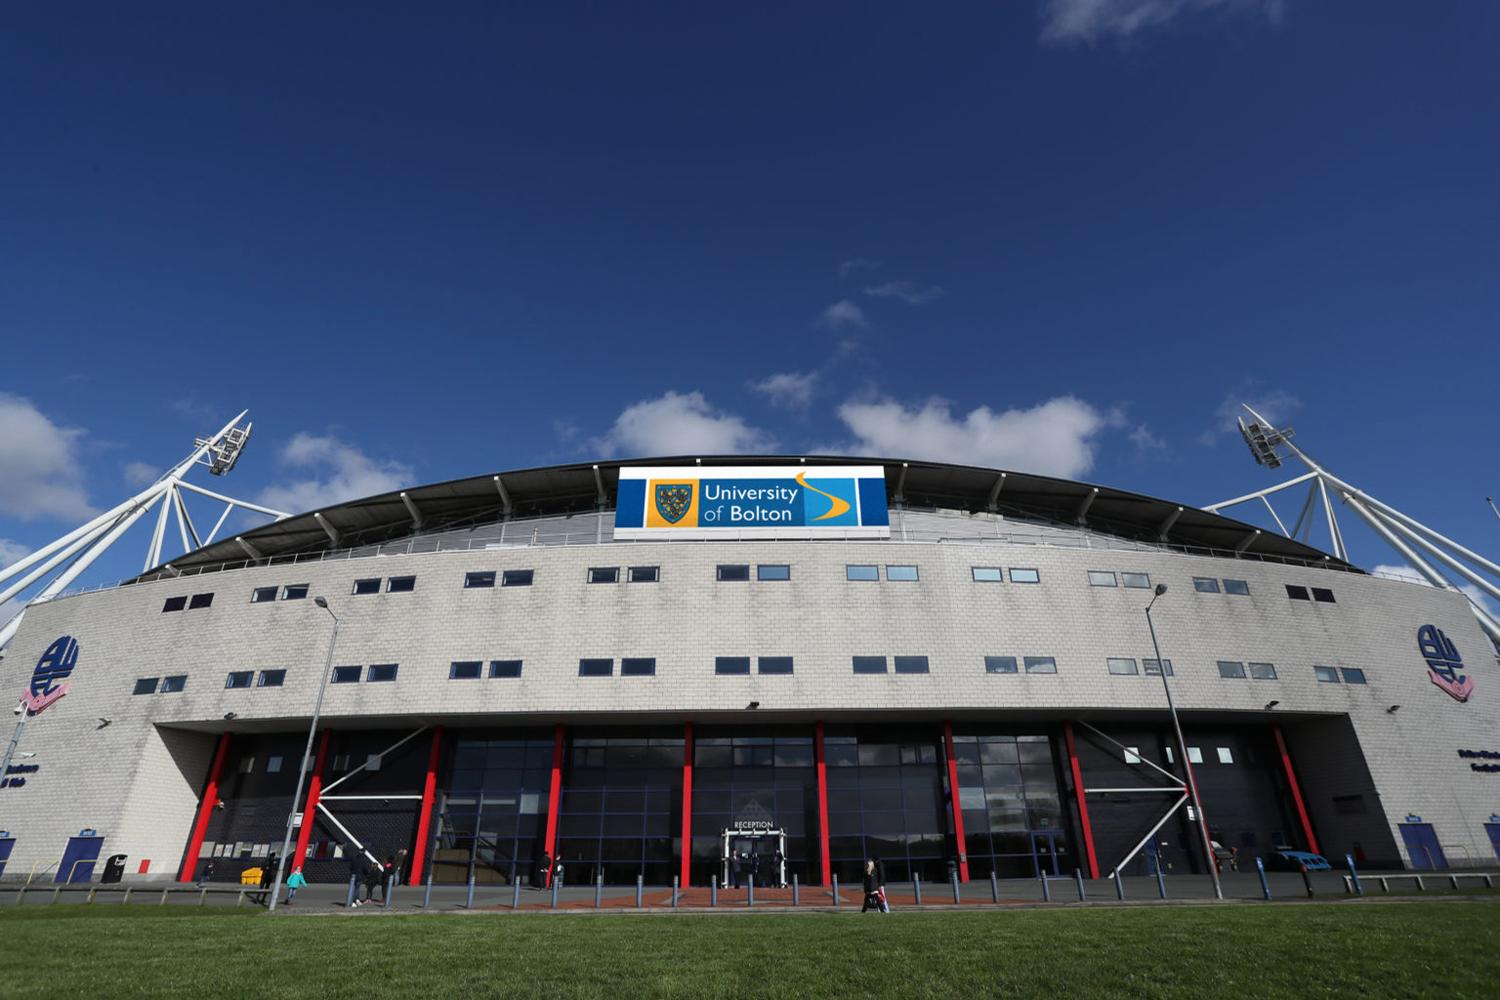 Owner Ken Anderson filed a notice of intent to appoint an administrator for both BWFC and Bolton Whites Hotel – a property located at the club's stadium